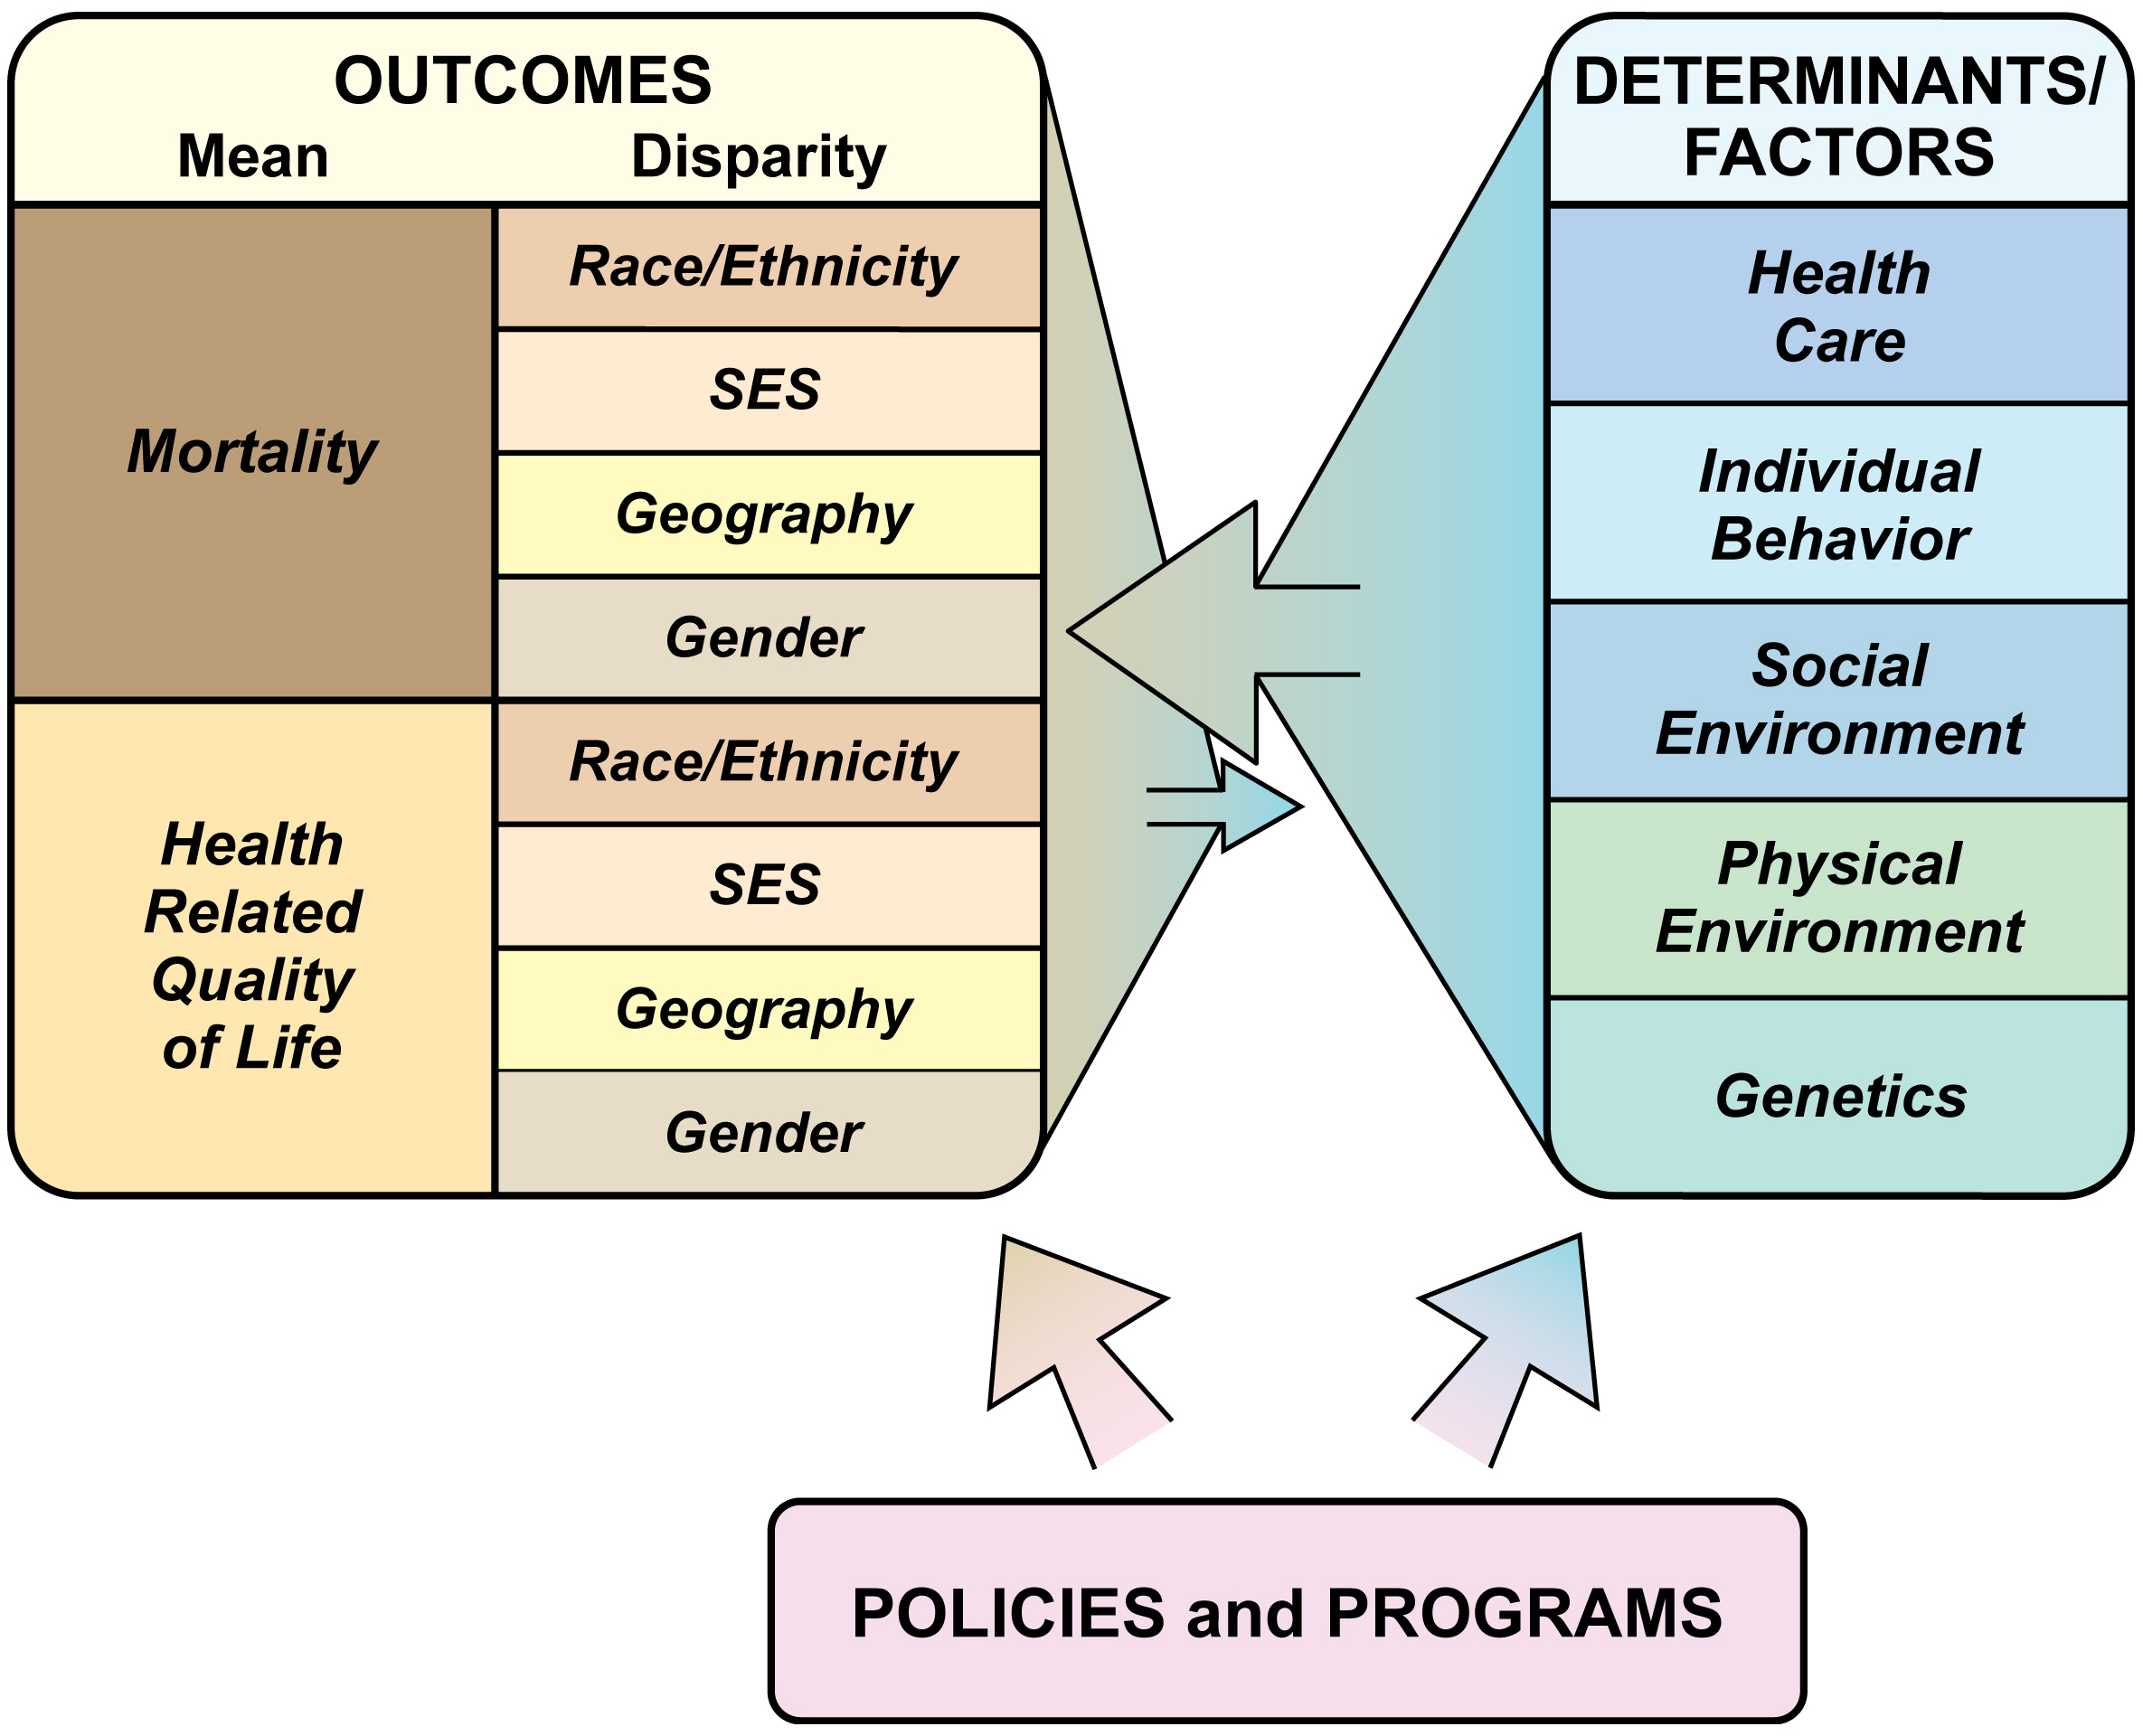 What Are Population Health Determinants Or Factors Improving